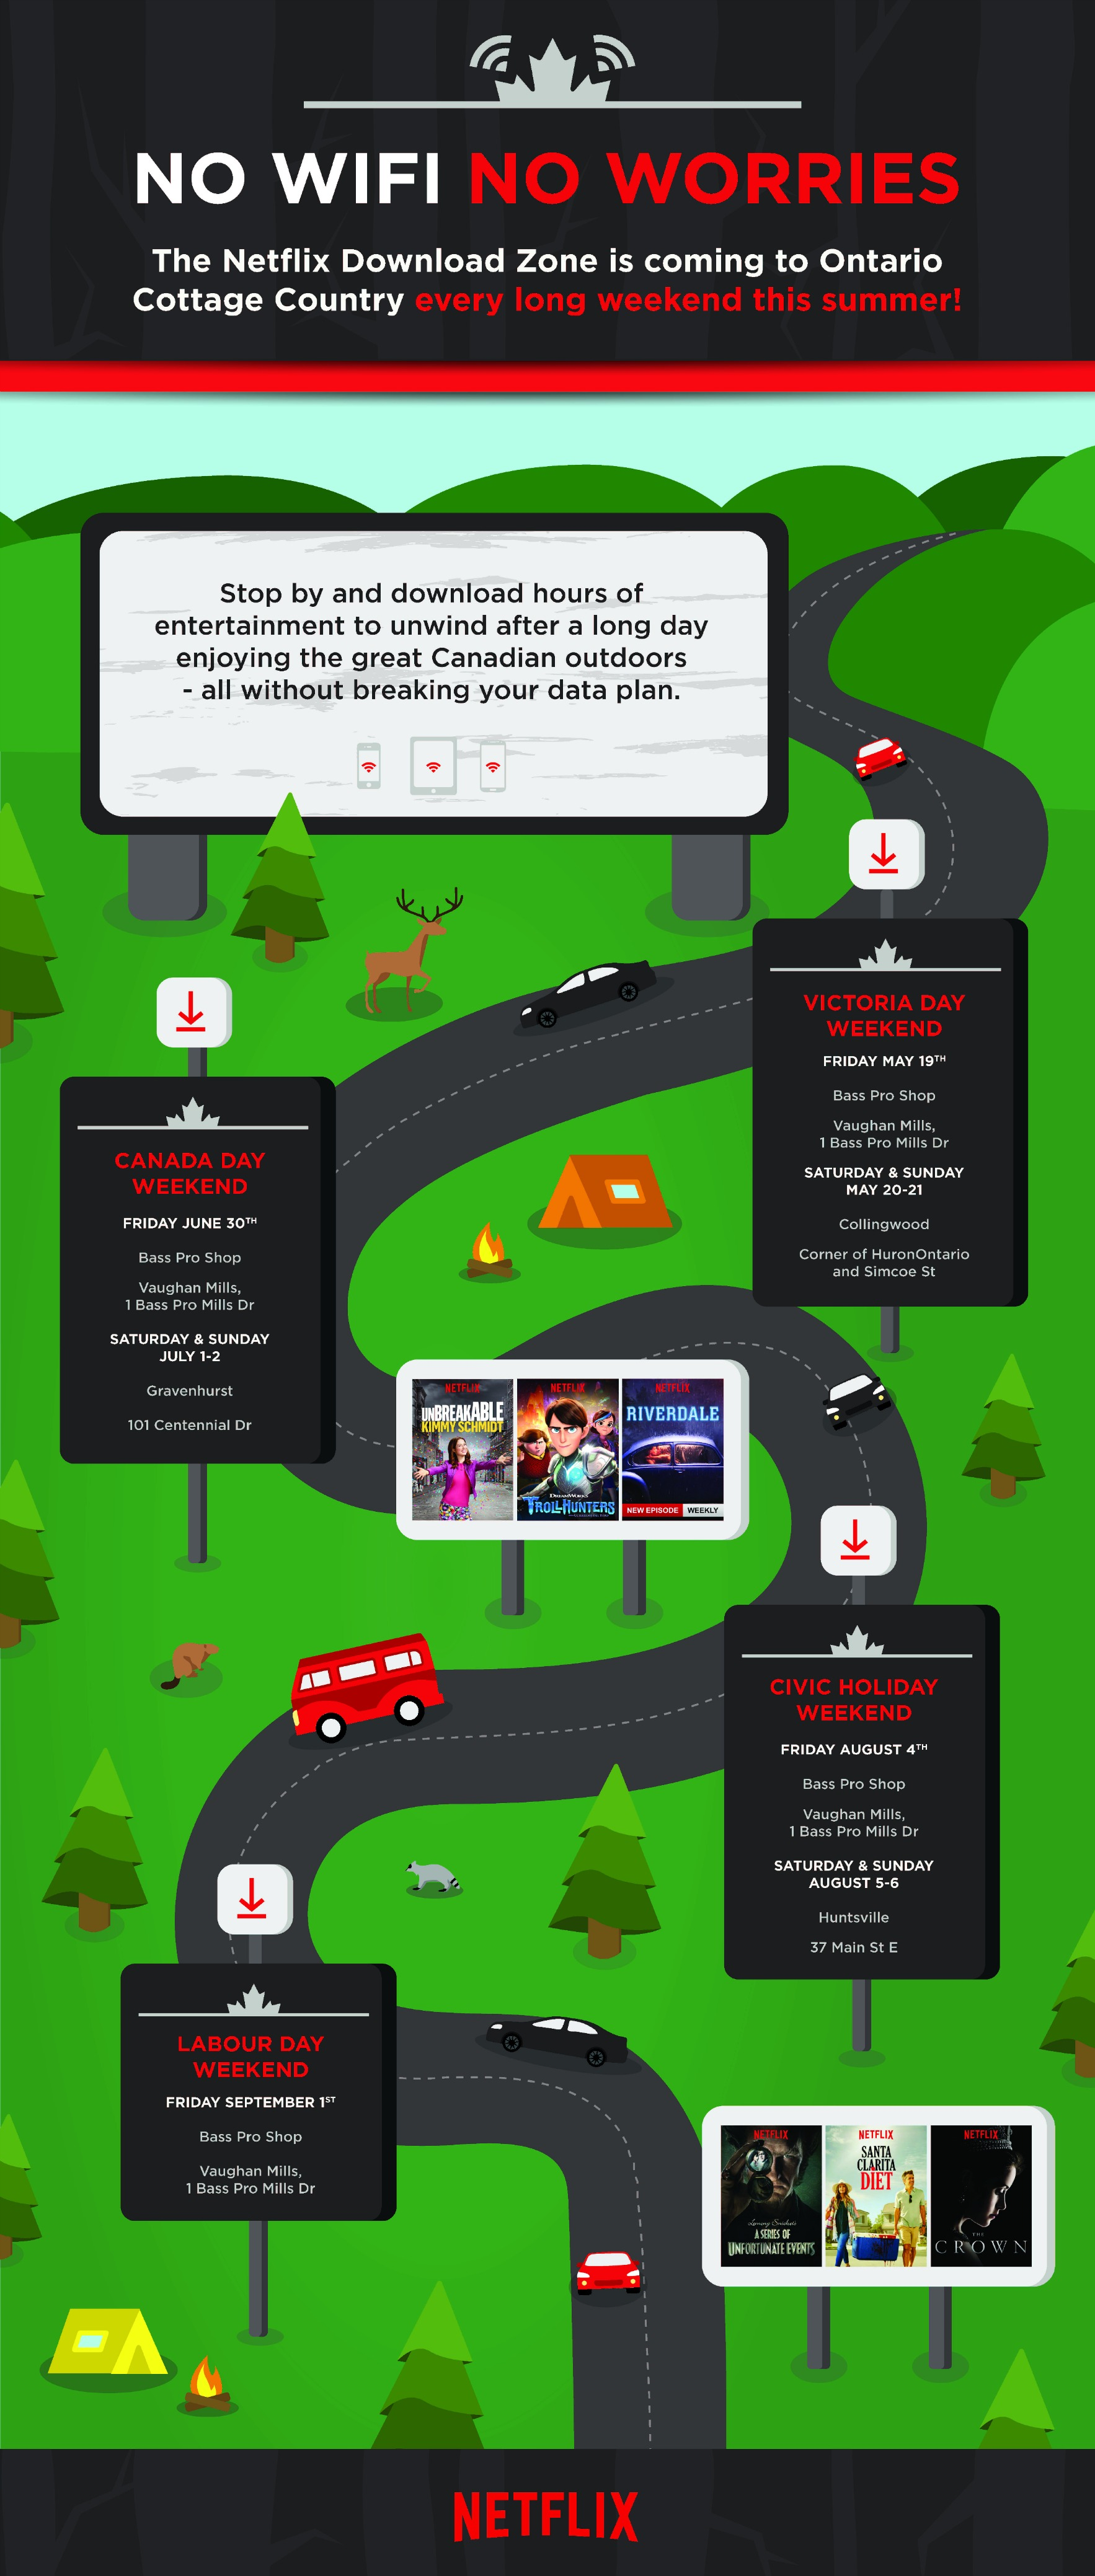 Netflix_DownloadZone_Infographic_2